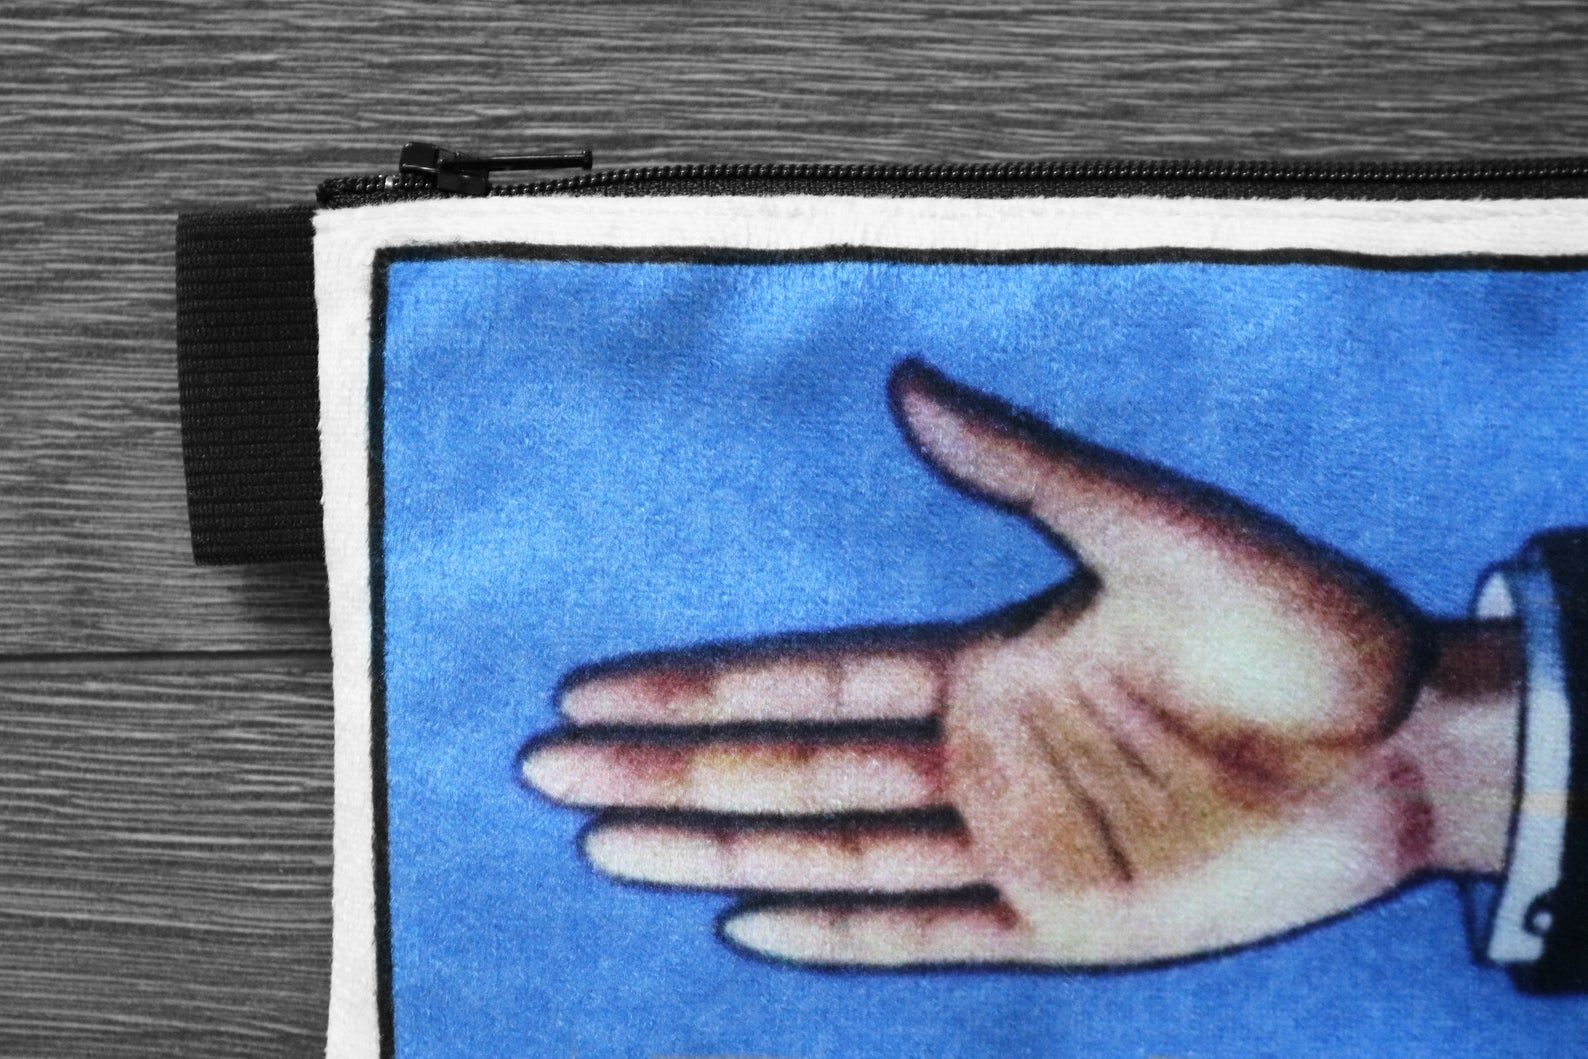 la mano - lined velveteen pencil case - loteria card game series